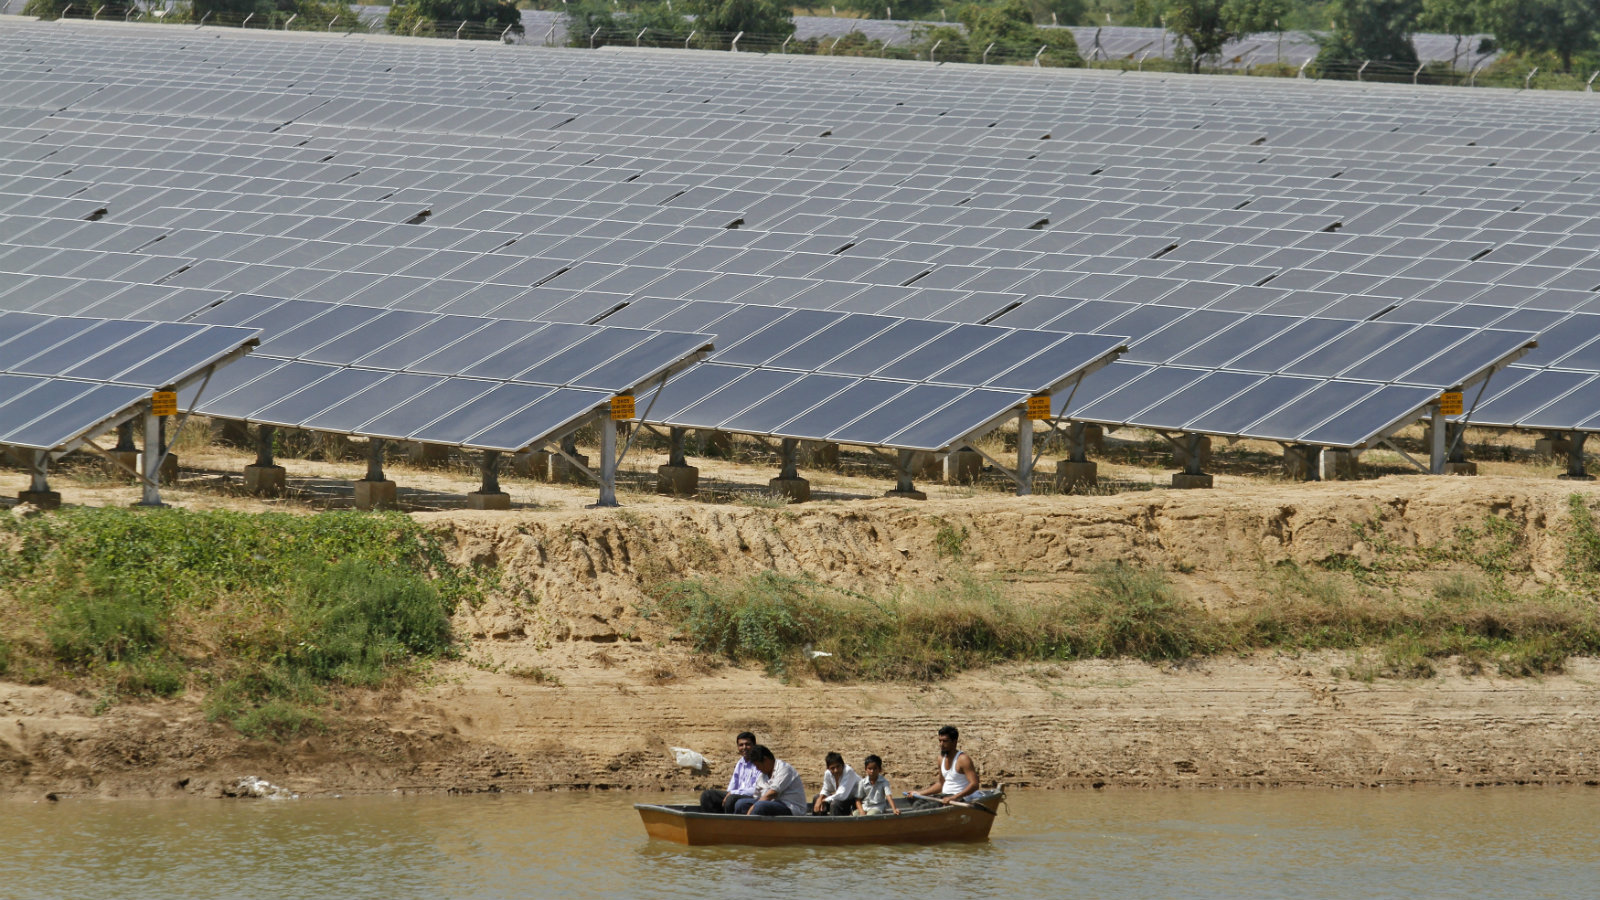 Security personnel sit in a boat as they patrol the premises of a newly inaugurated solar farm at Gunthawada village in Banaskantha district in the western Indian state of Gujarat October 14, 2011. The solar farm is Asia's largest, according to its developer Moser Baer Clean Energy. It is spread over an area of 305 acres and is expected to generate 52 million kilowatt hours of energy annually.